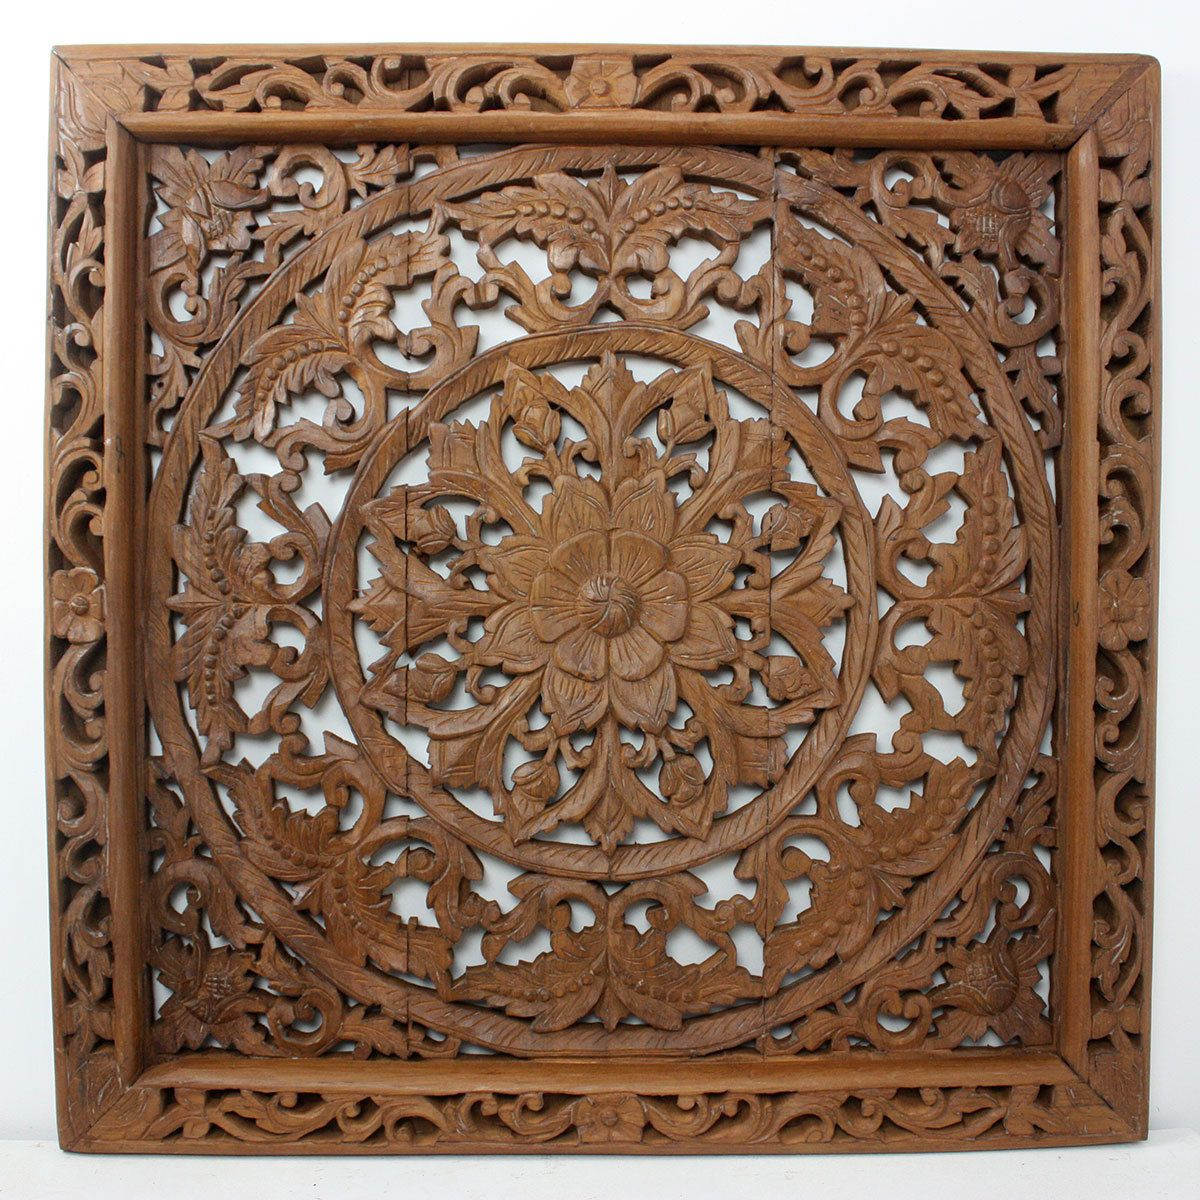 This remarkably handcarved wall panel showcases an intricately